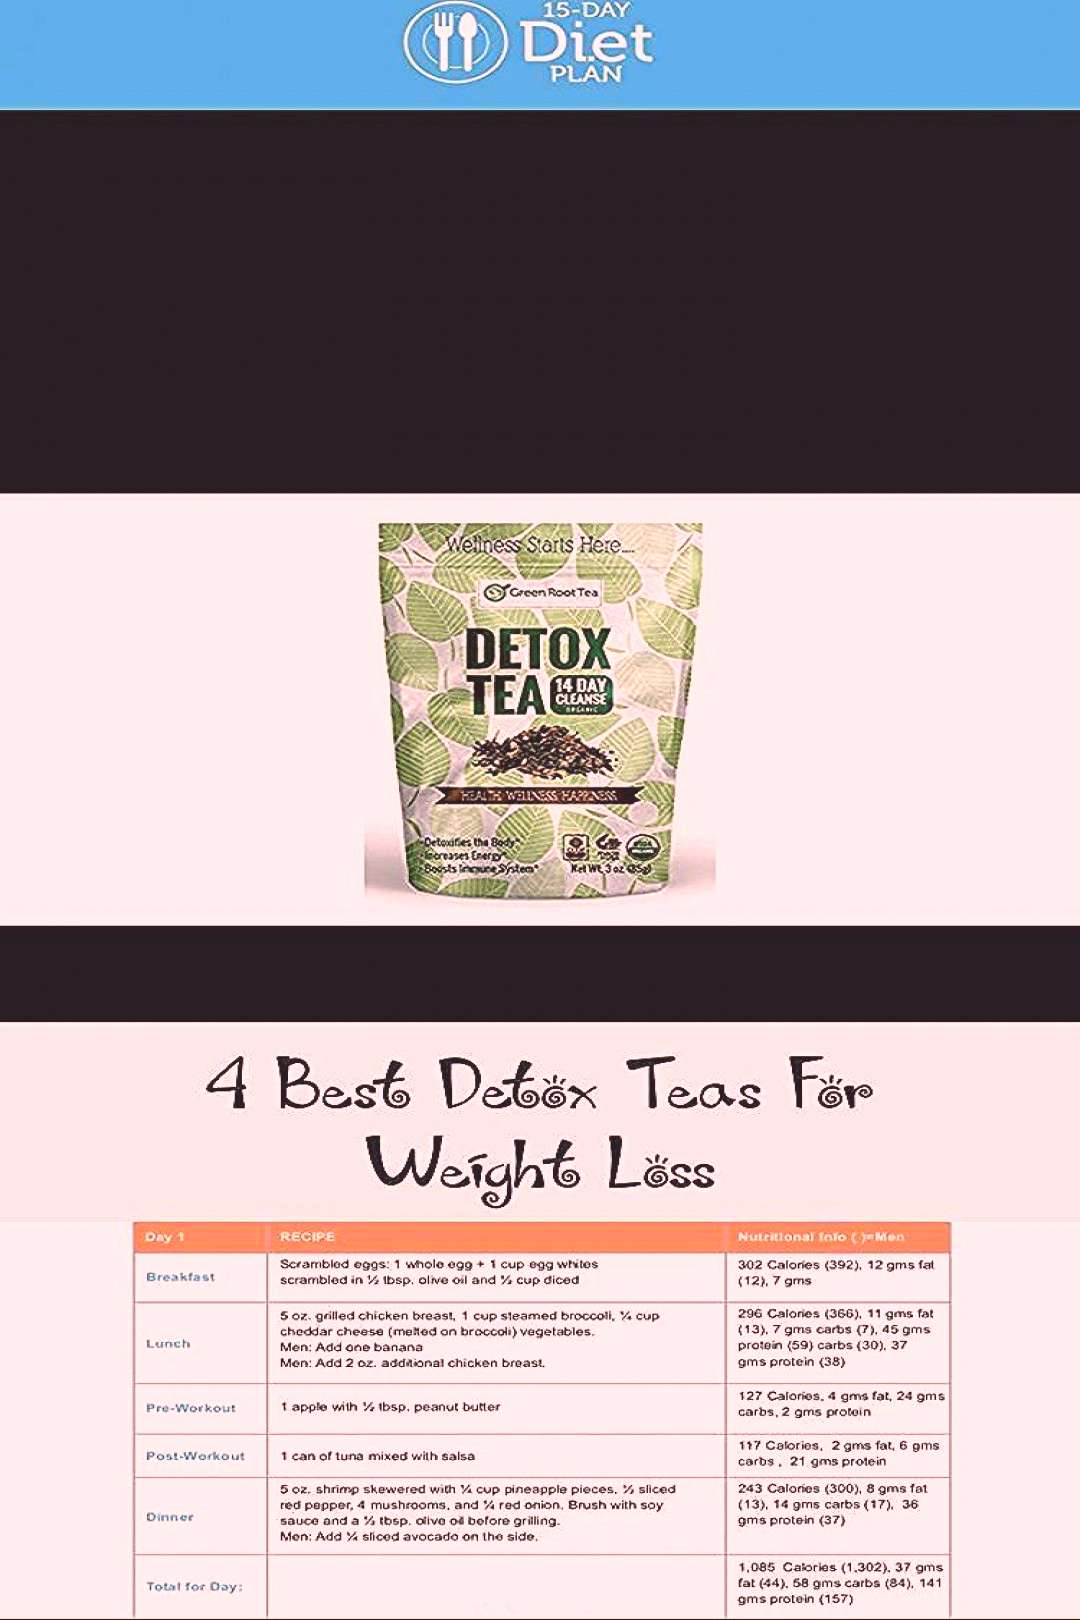 diet plans to lose weight, detox tea to lose weight, lose weight with green tea ... diet plans to l